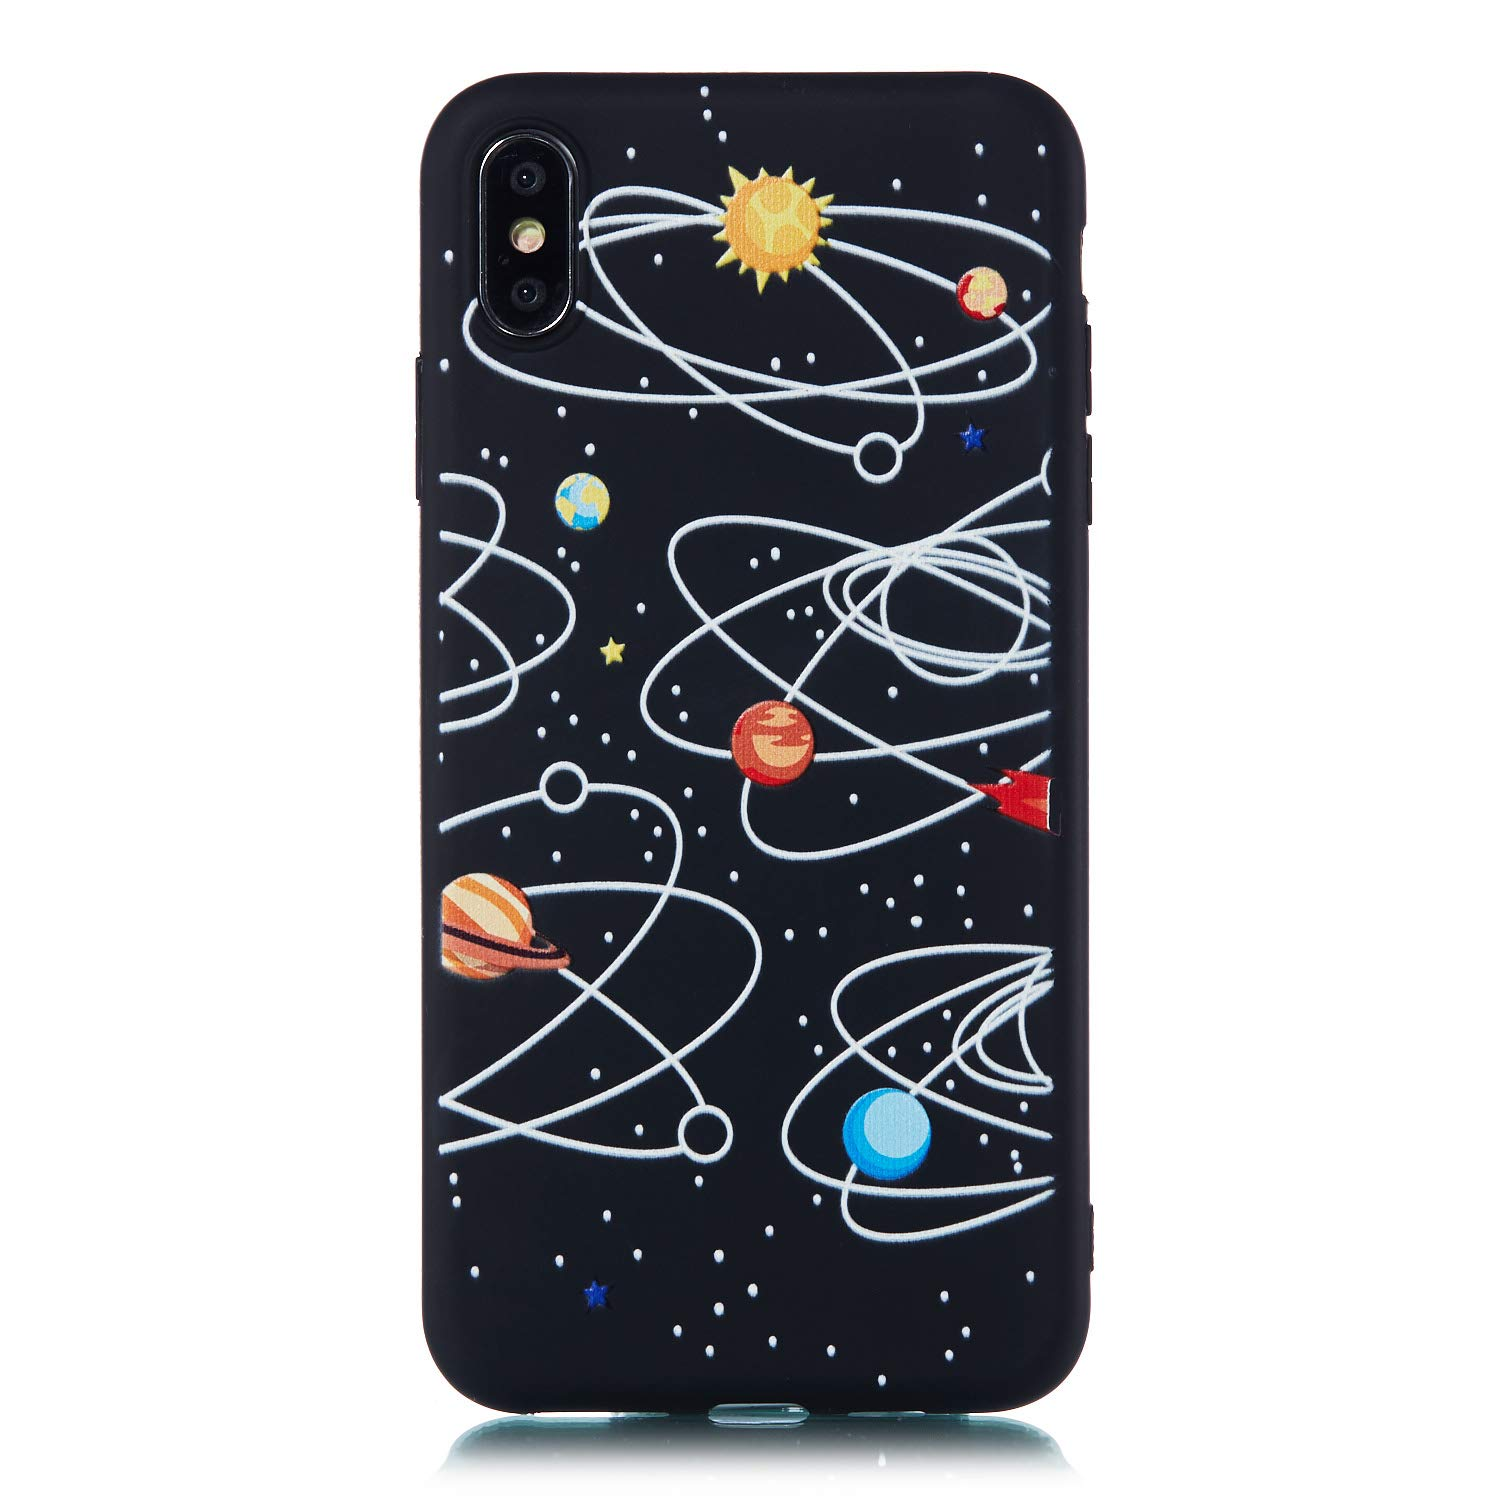 Yobby Case for iPhone Xs,iPhone X Case,Black Soft Silicone Night Sky Series Phone Case with Cute Astronaut Pattern Design Slim Flexible Rubber TPU Shockproof Back Cover